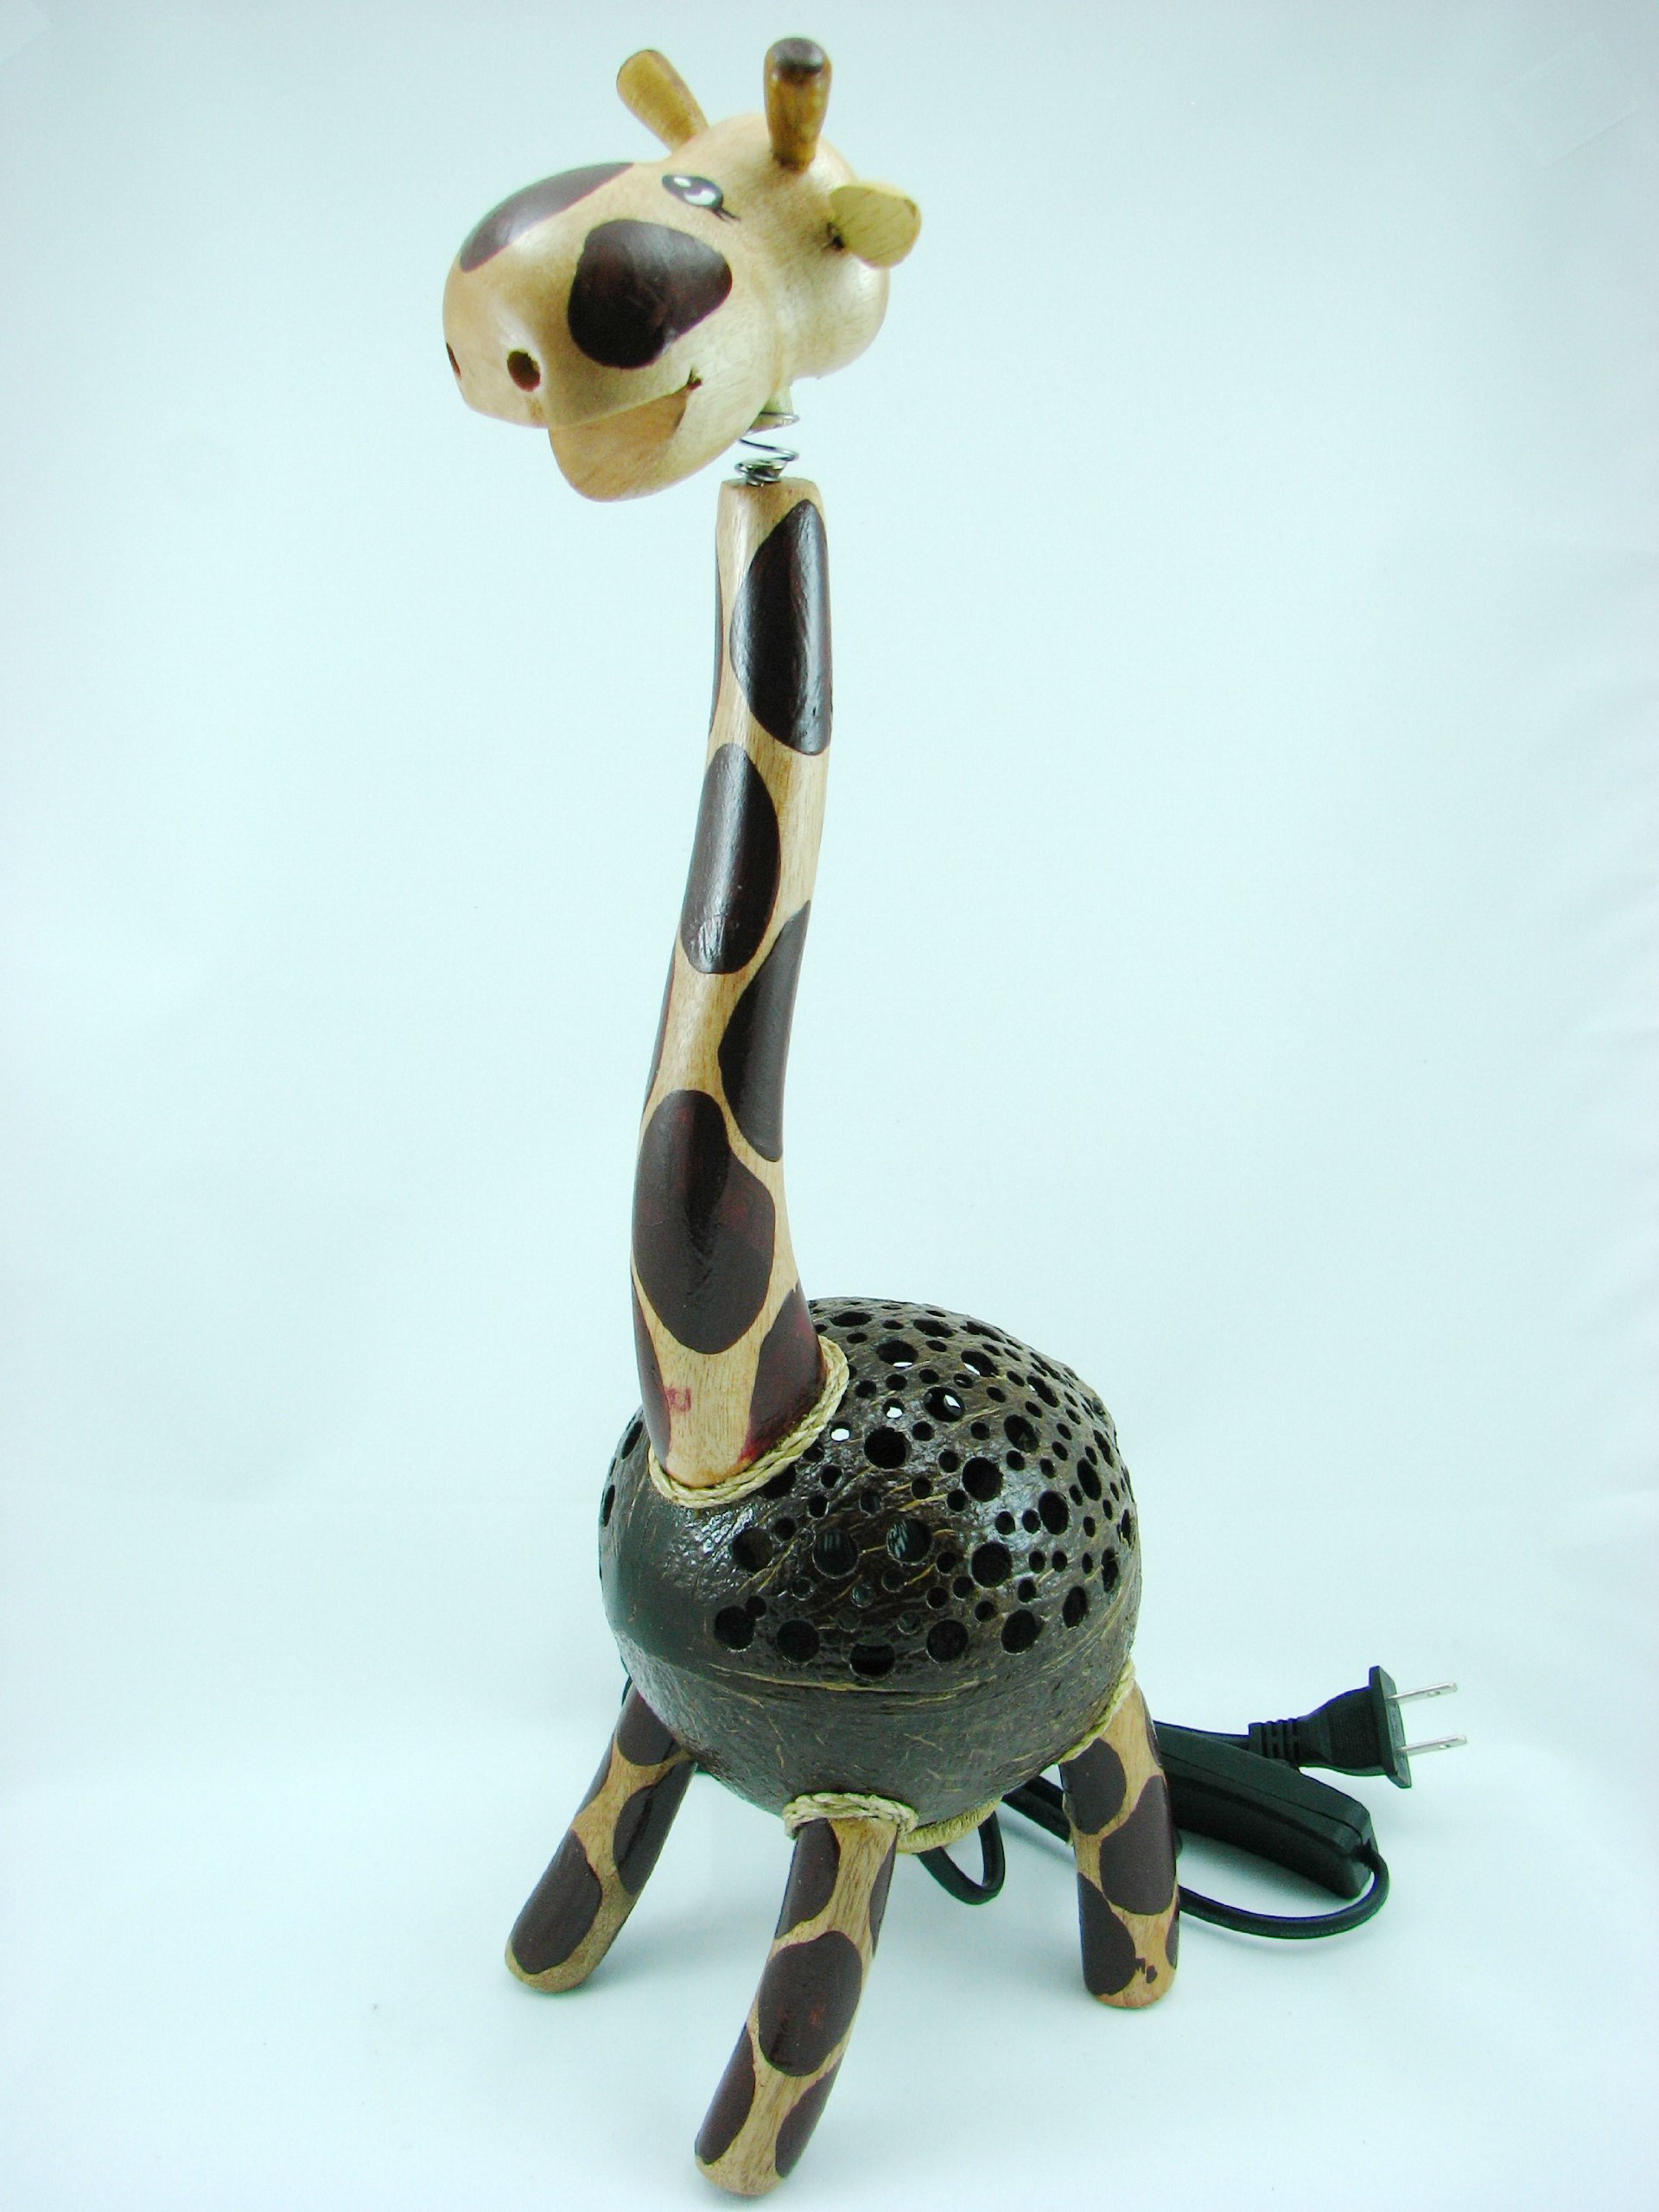 Coconut Shell Lamp - Giraffe Lamp 12'' Height - Wooden Crafts Handmade of Thailand Craftsman by Thailand Gifts Shop